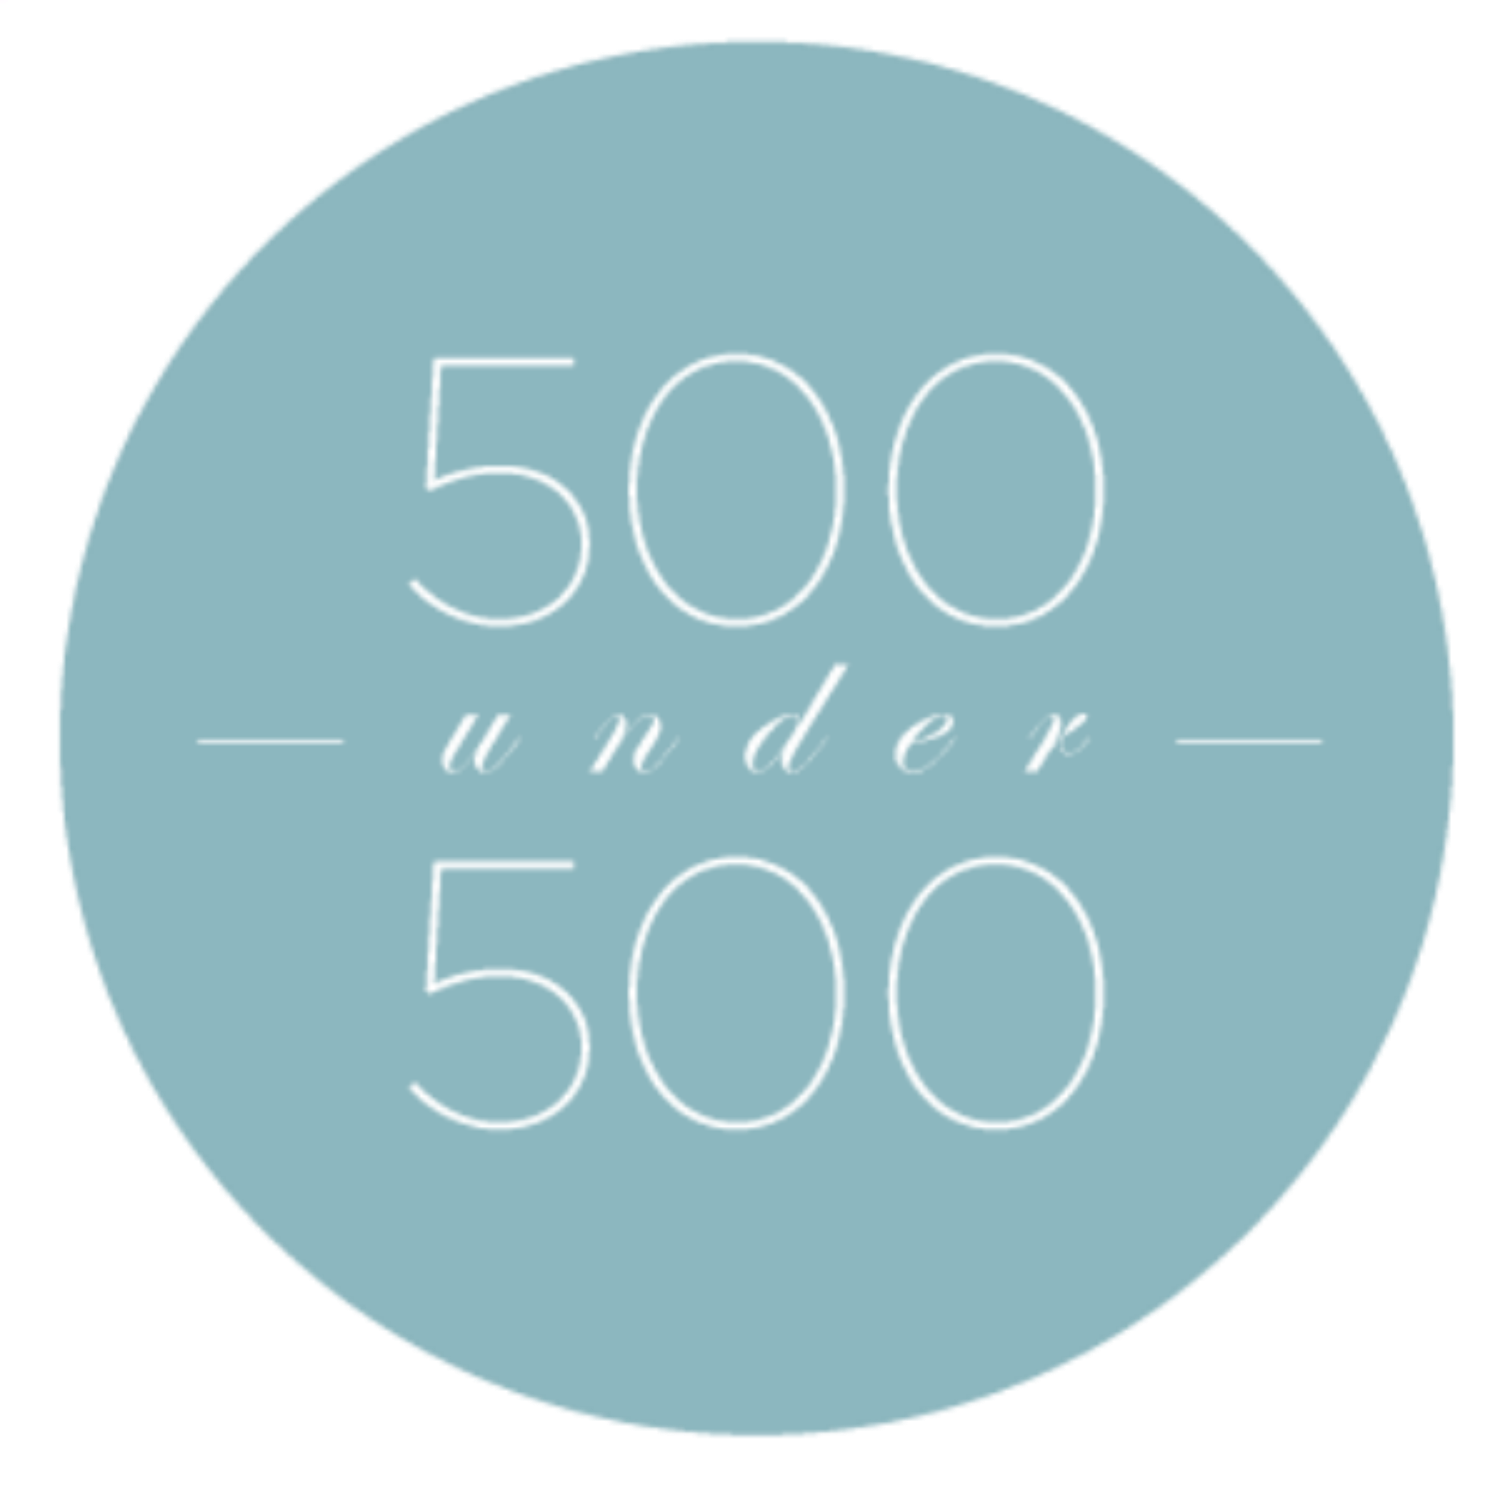 ADVERTISING'S TOP 500 UNDER 500